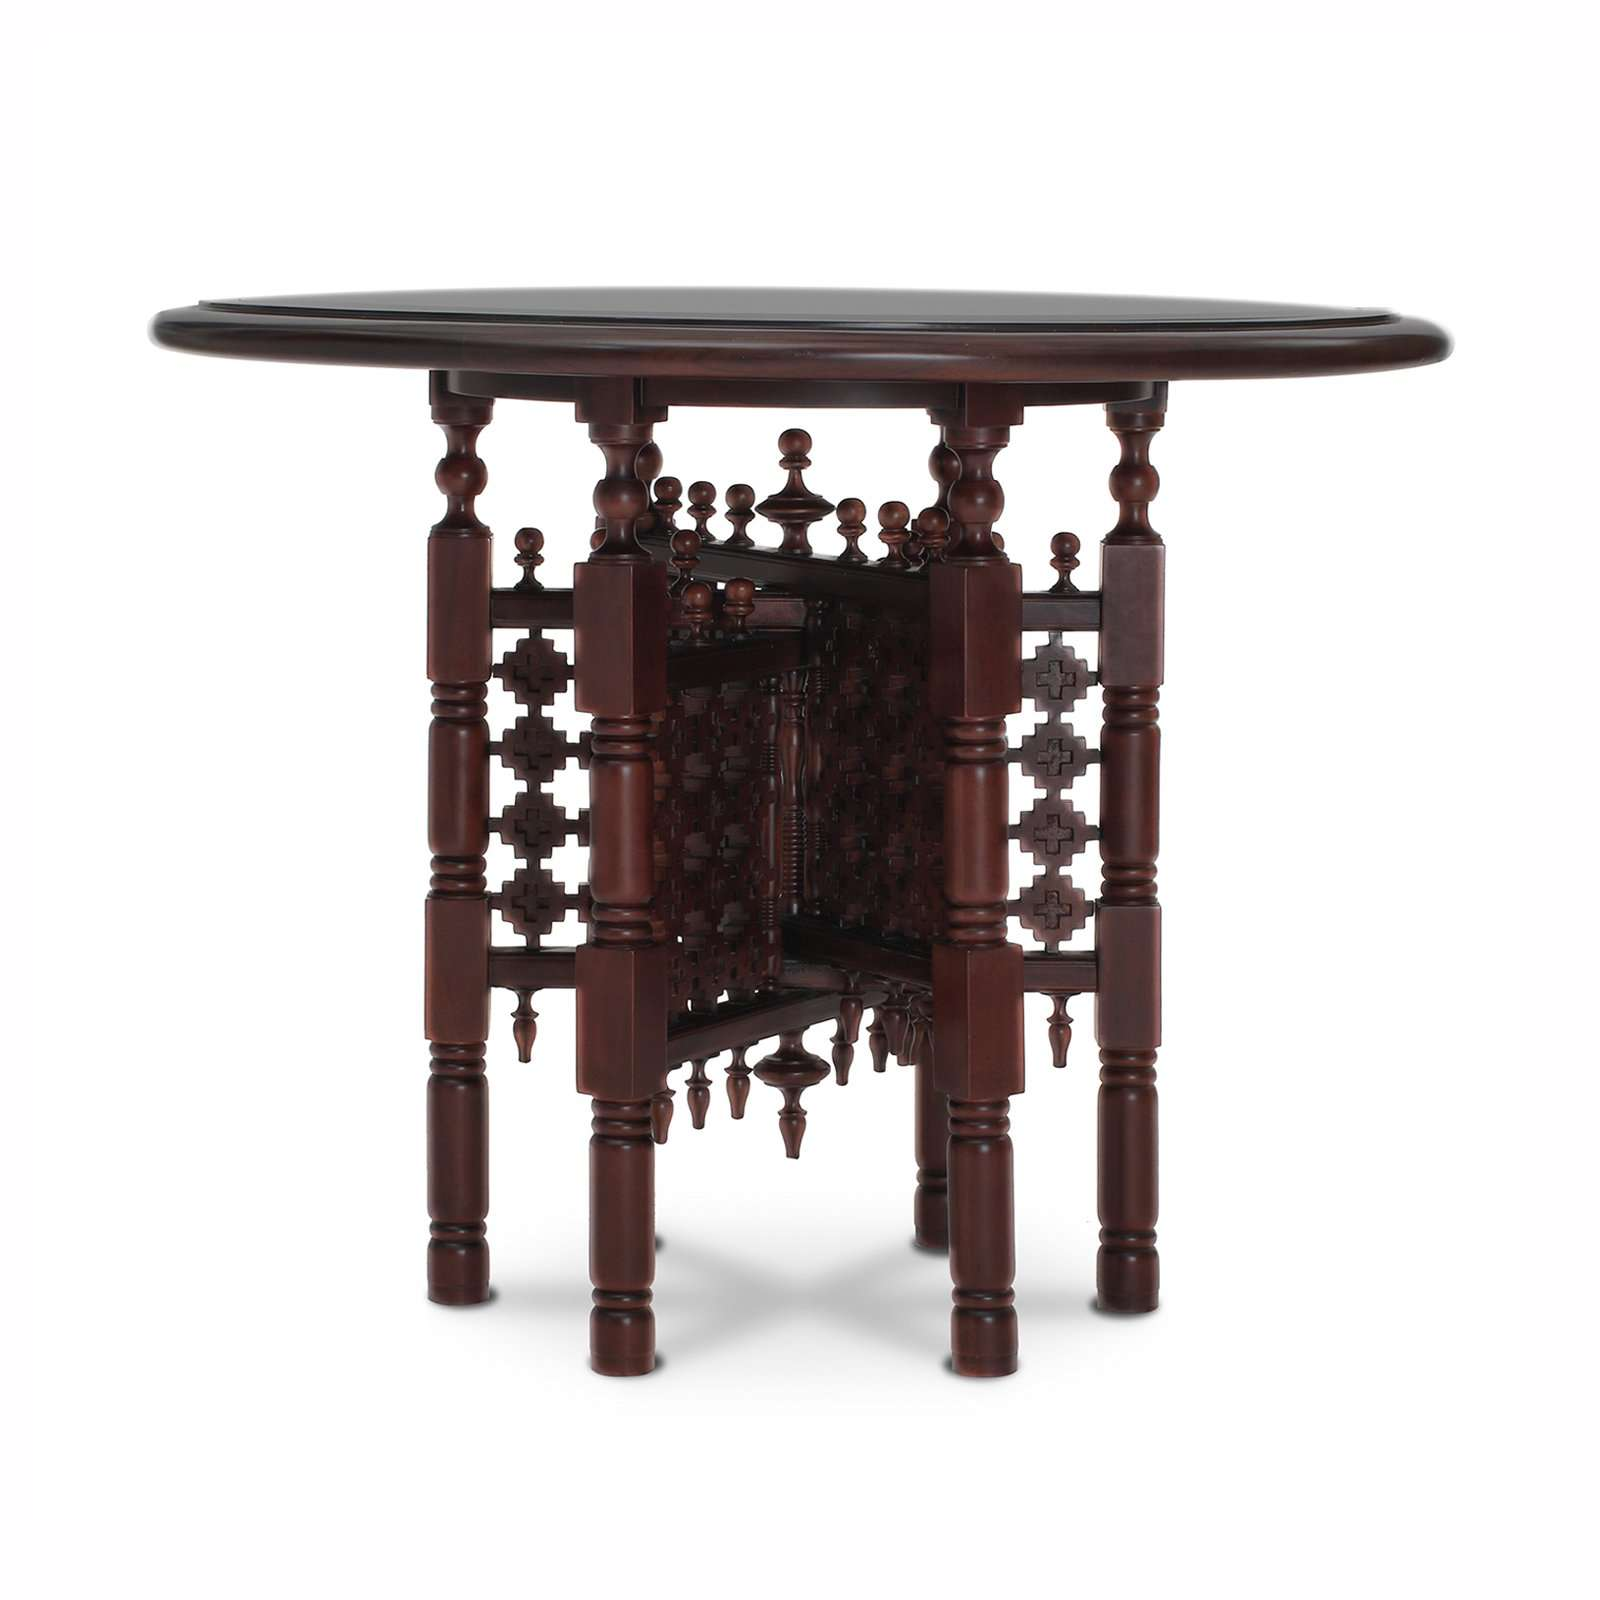 TANGIERS OCCASIONAL TABLE